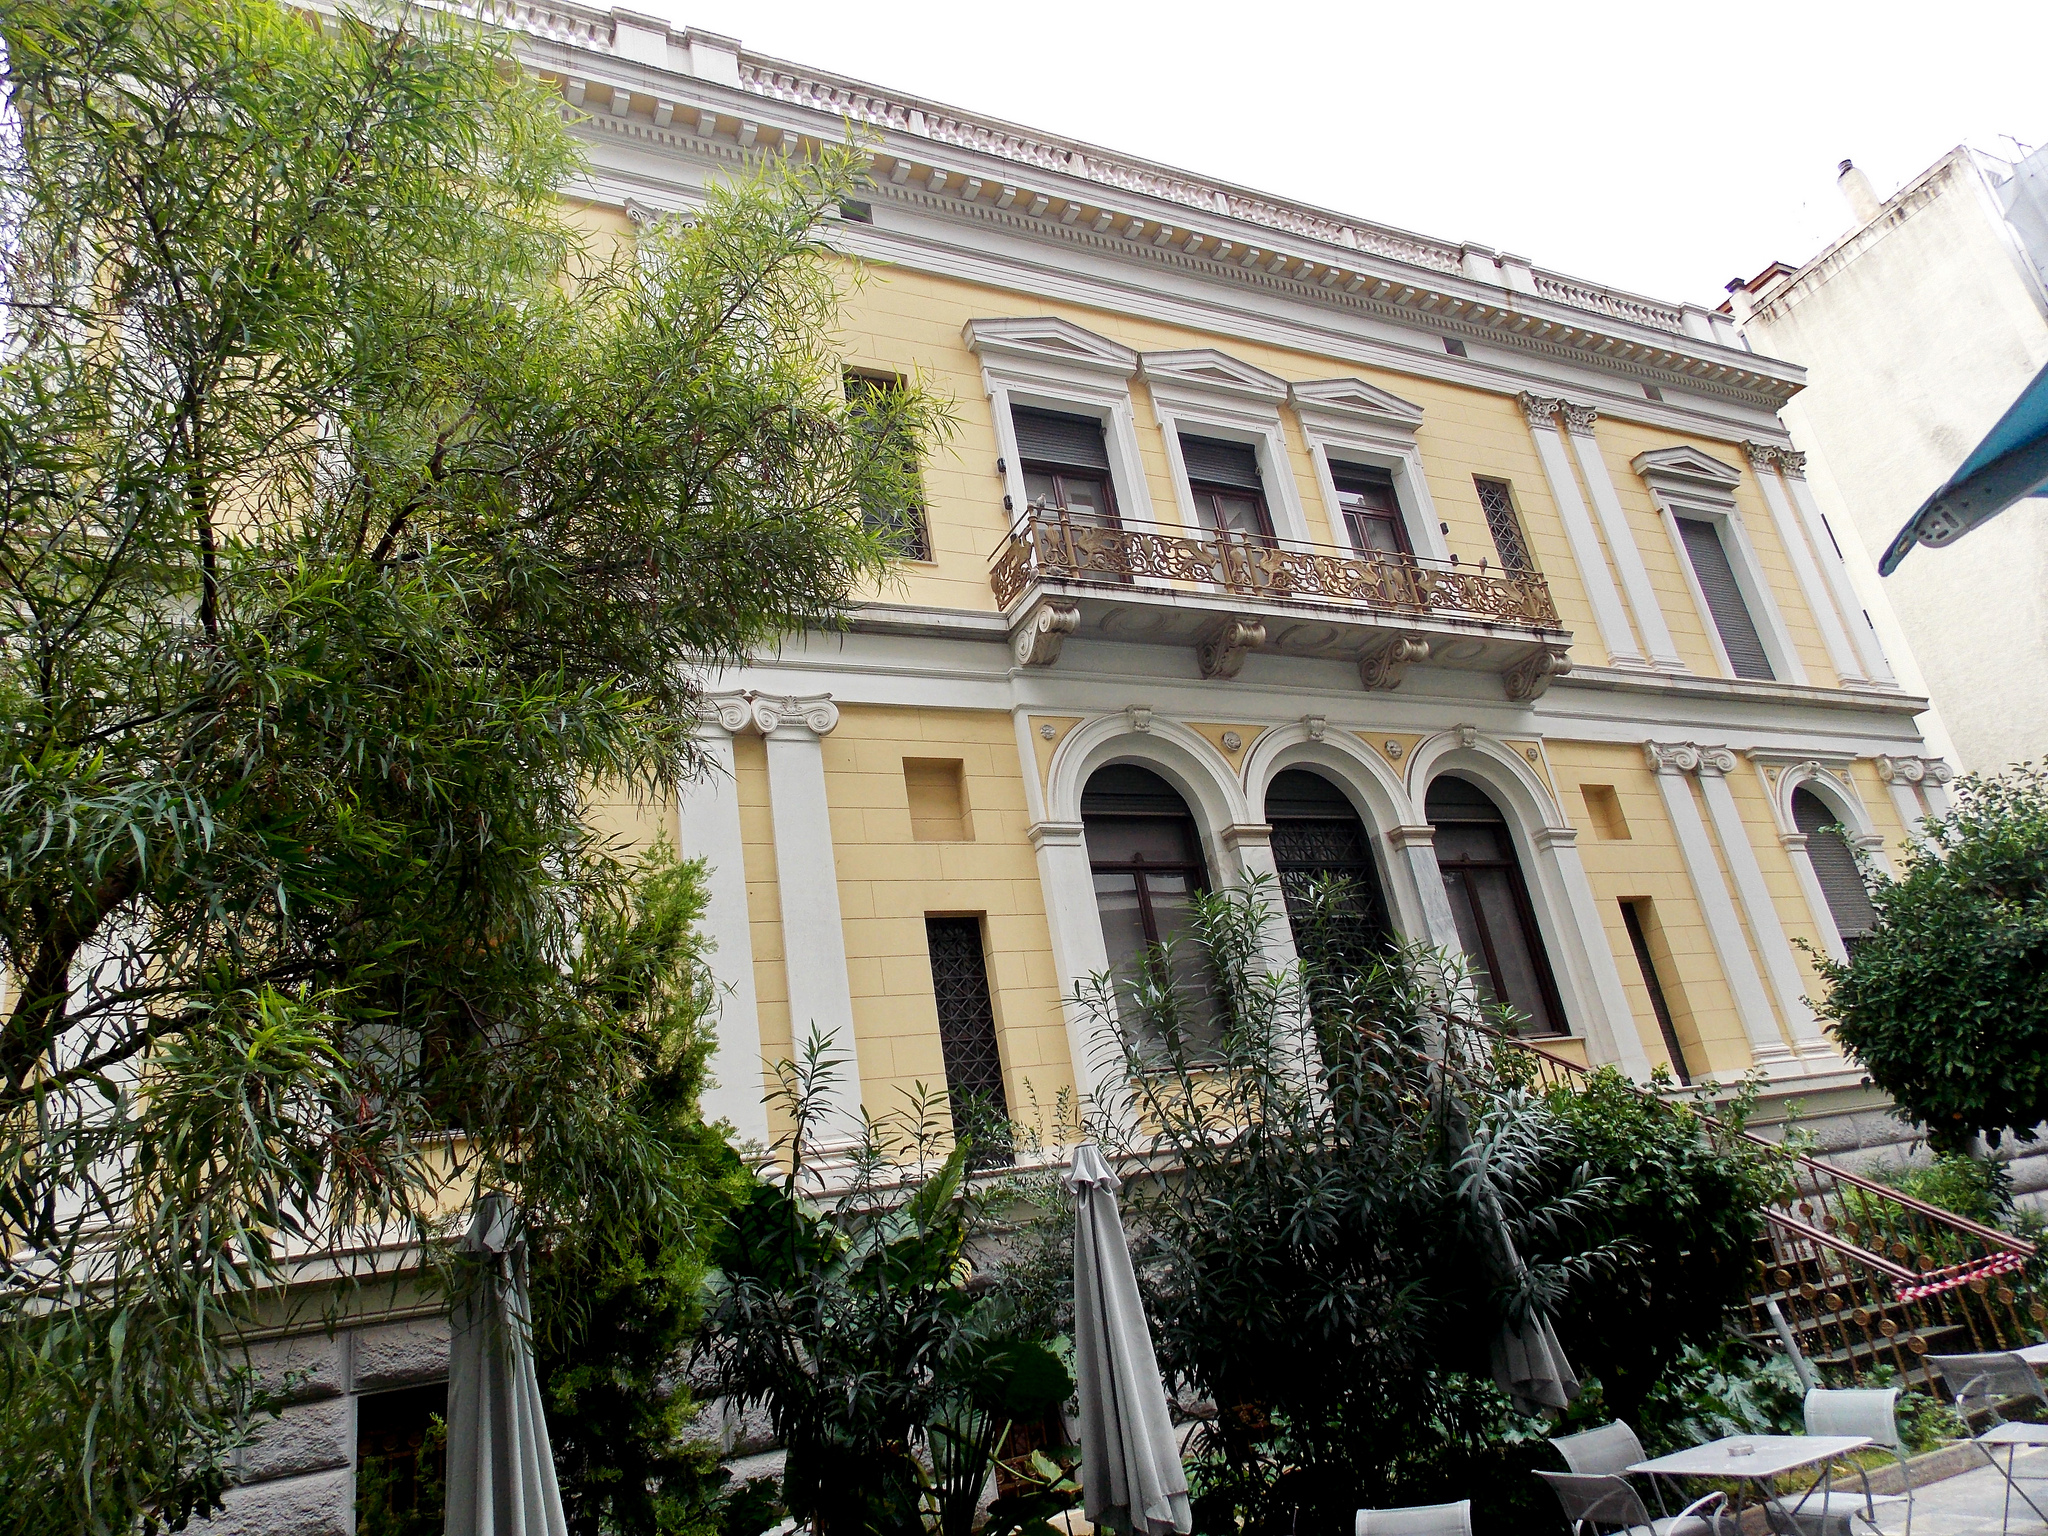 In the garden of the Numismatic Museum of Athens (Picture by Dimitris Kamaras @ Flickr)